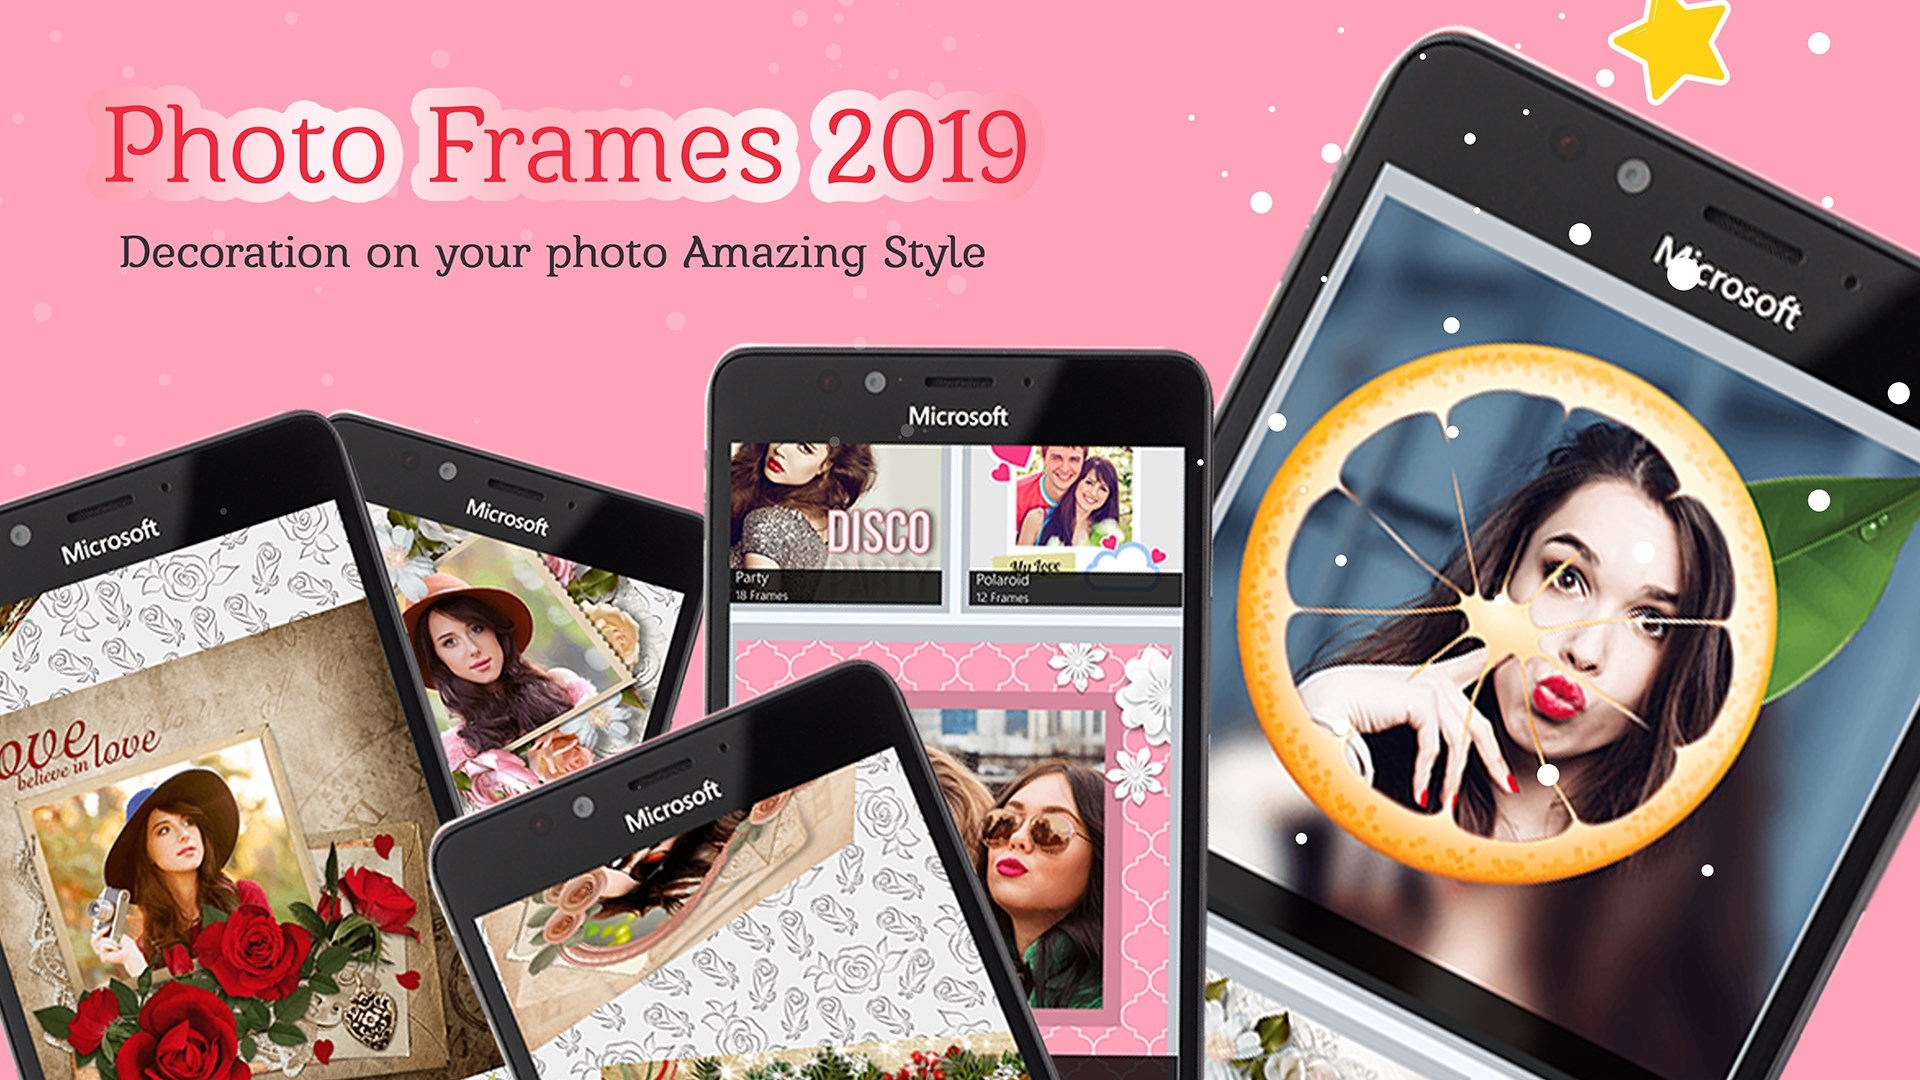 Get Photo Frames 2019 - Microsoft Store